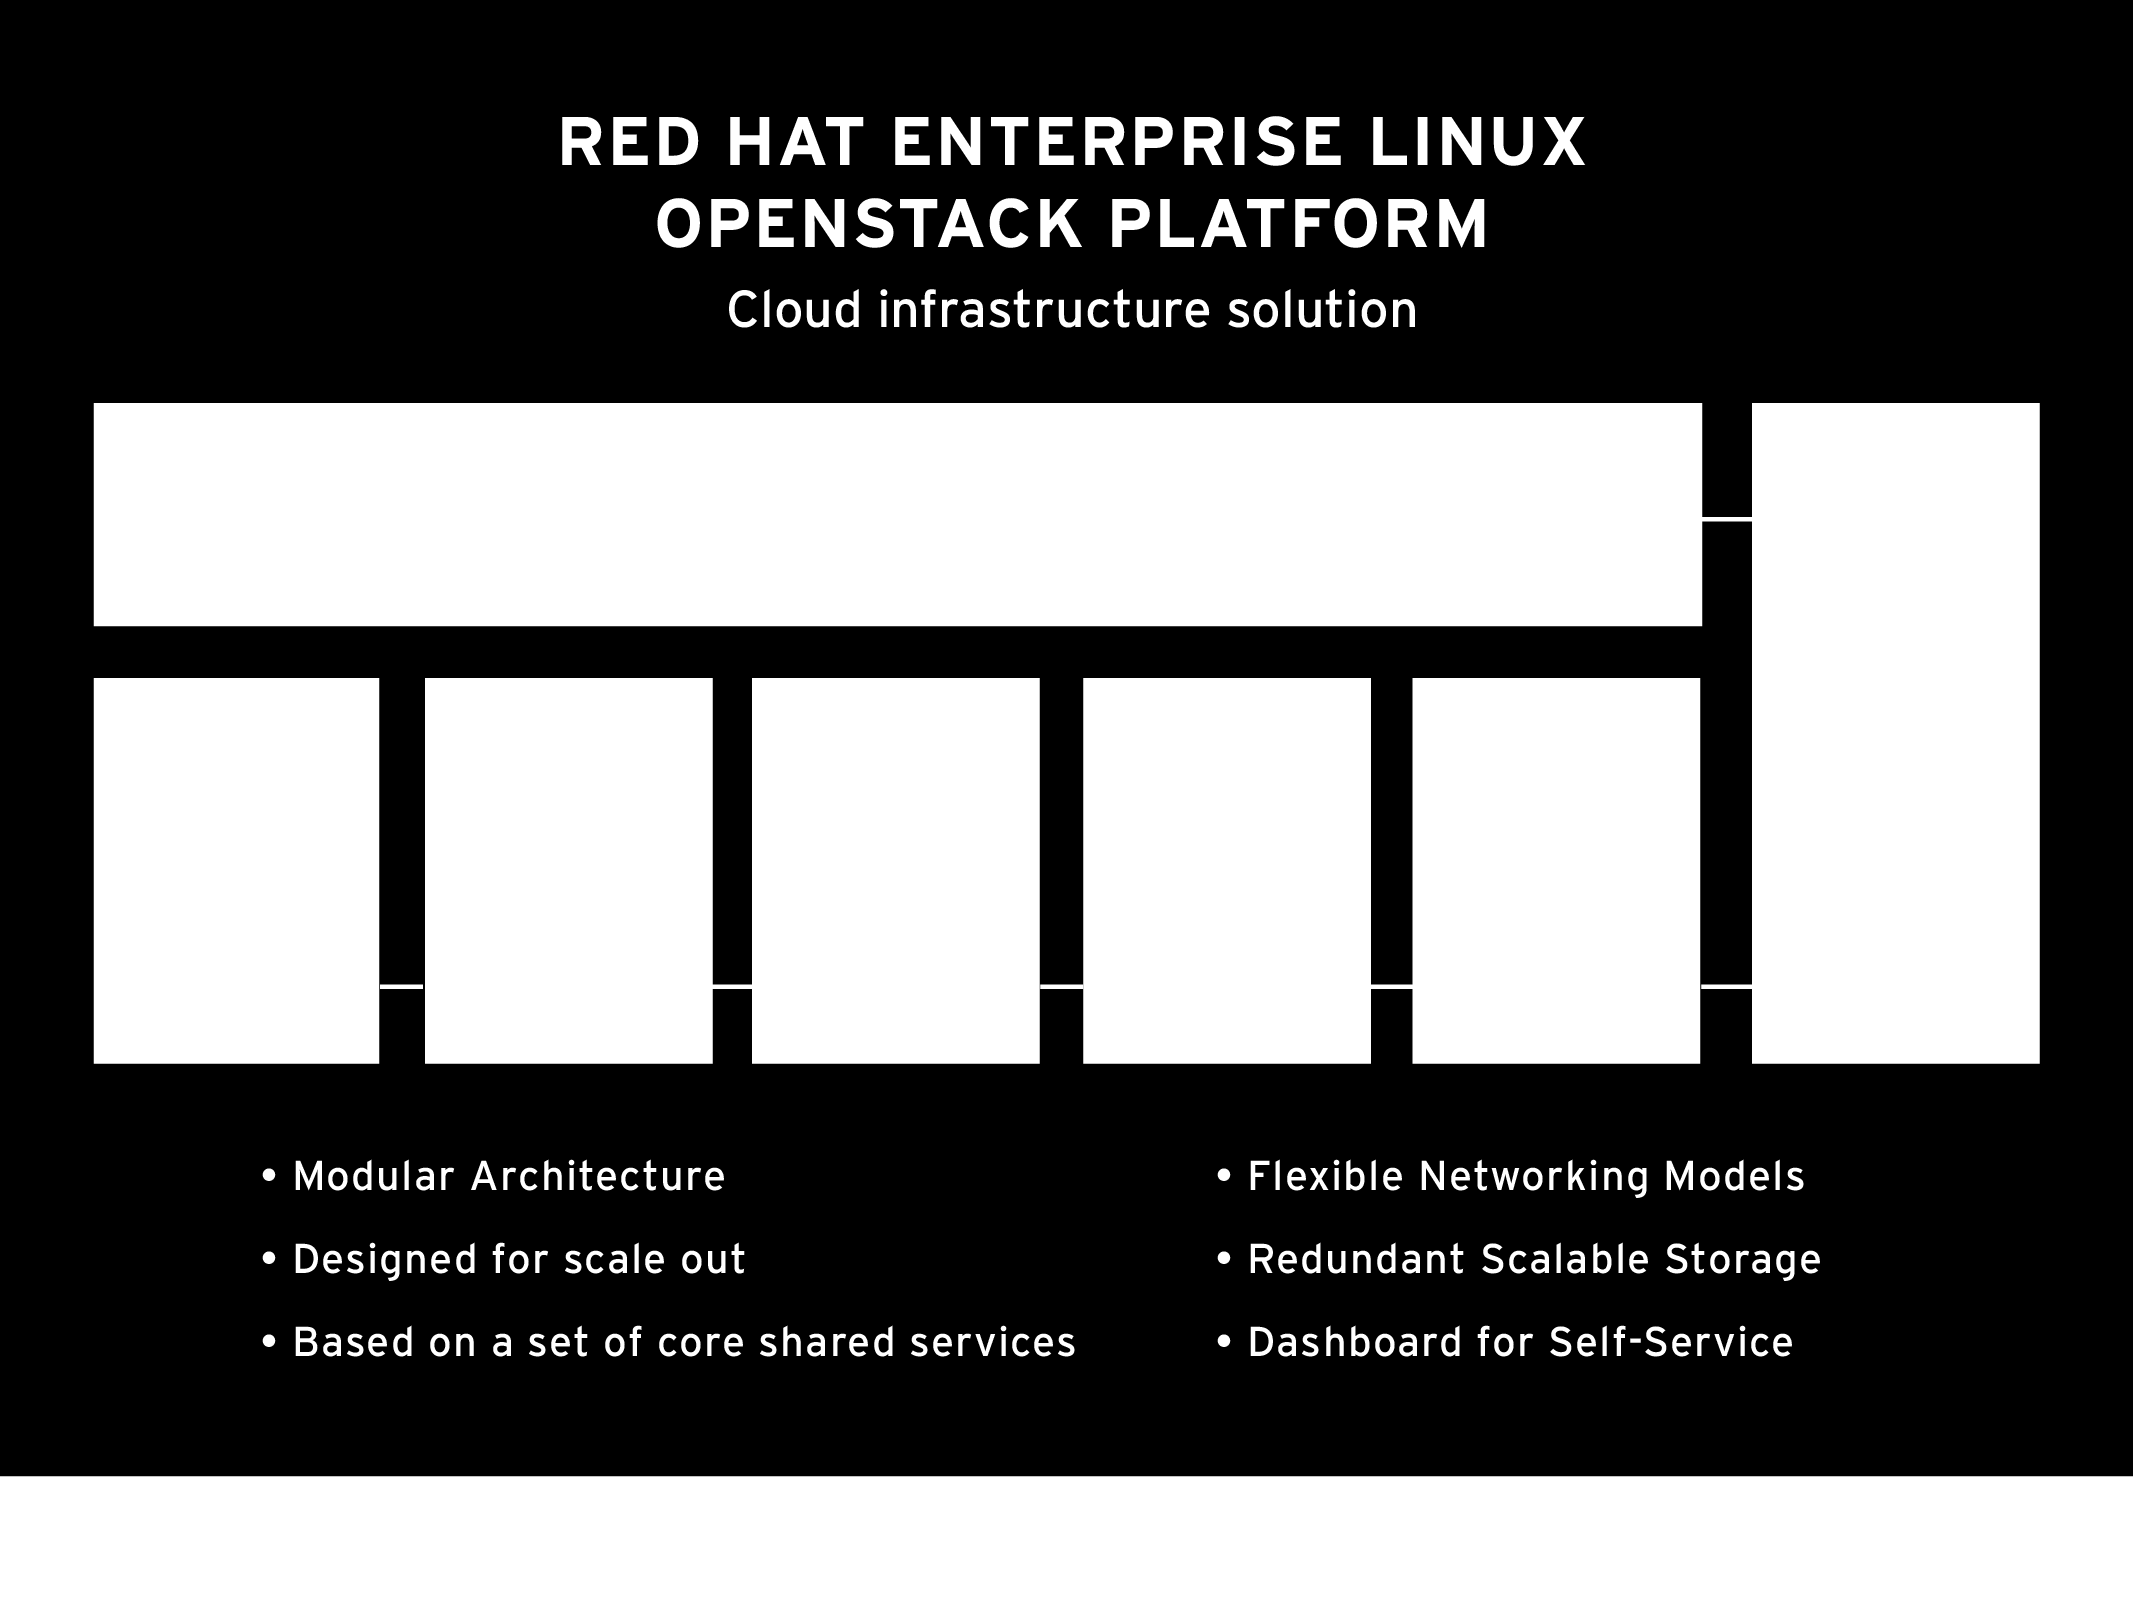 Red Hat OpenStack provides the foundation for your organization to build a private or public Infrastructure-as-a-Service (IaaS) cloud for cloud-enabled workloads.